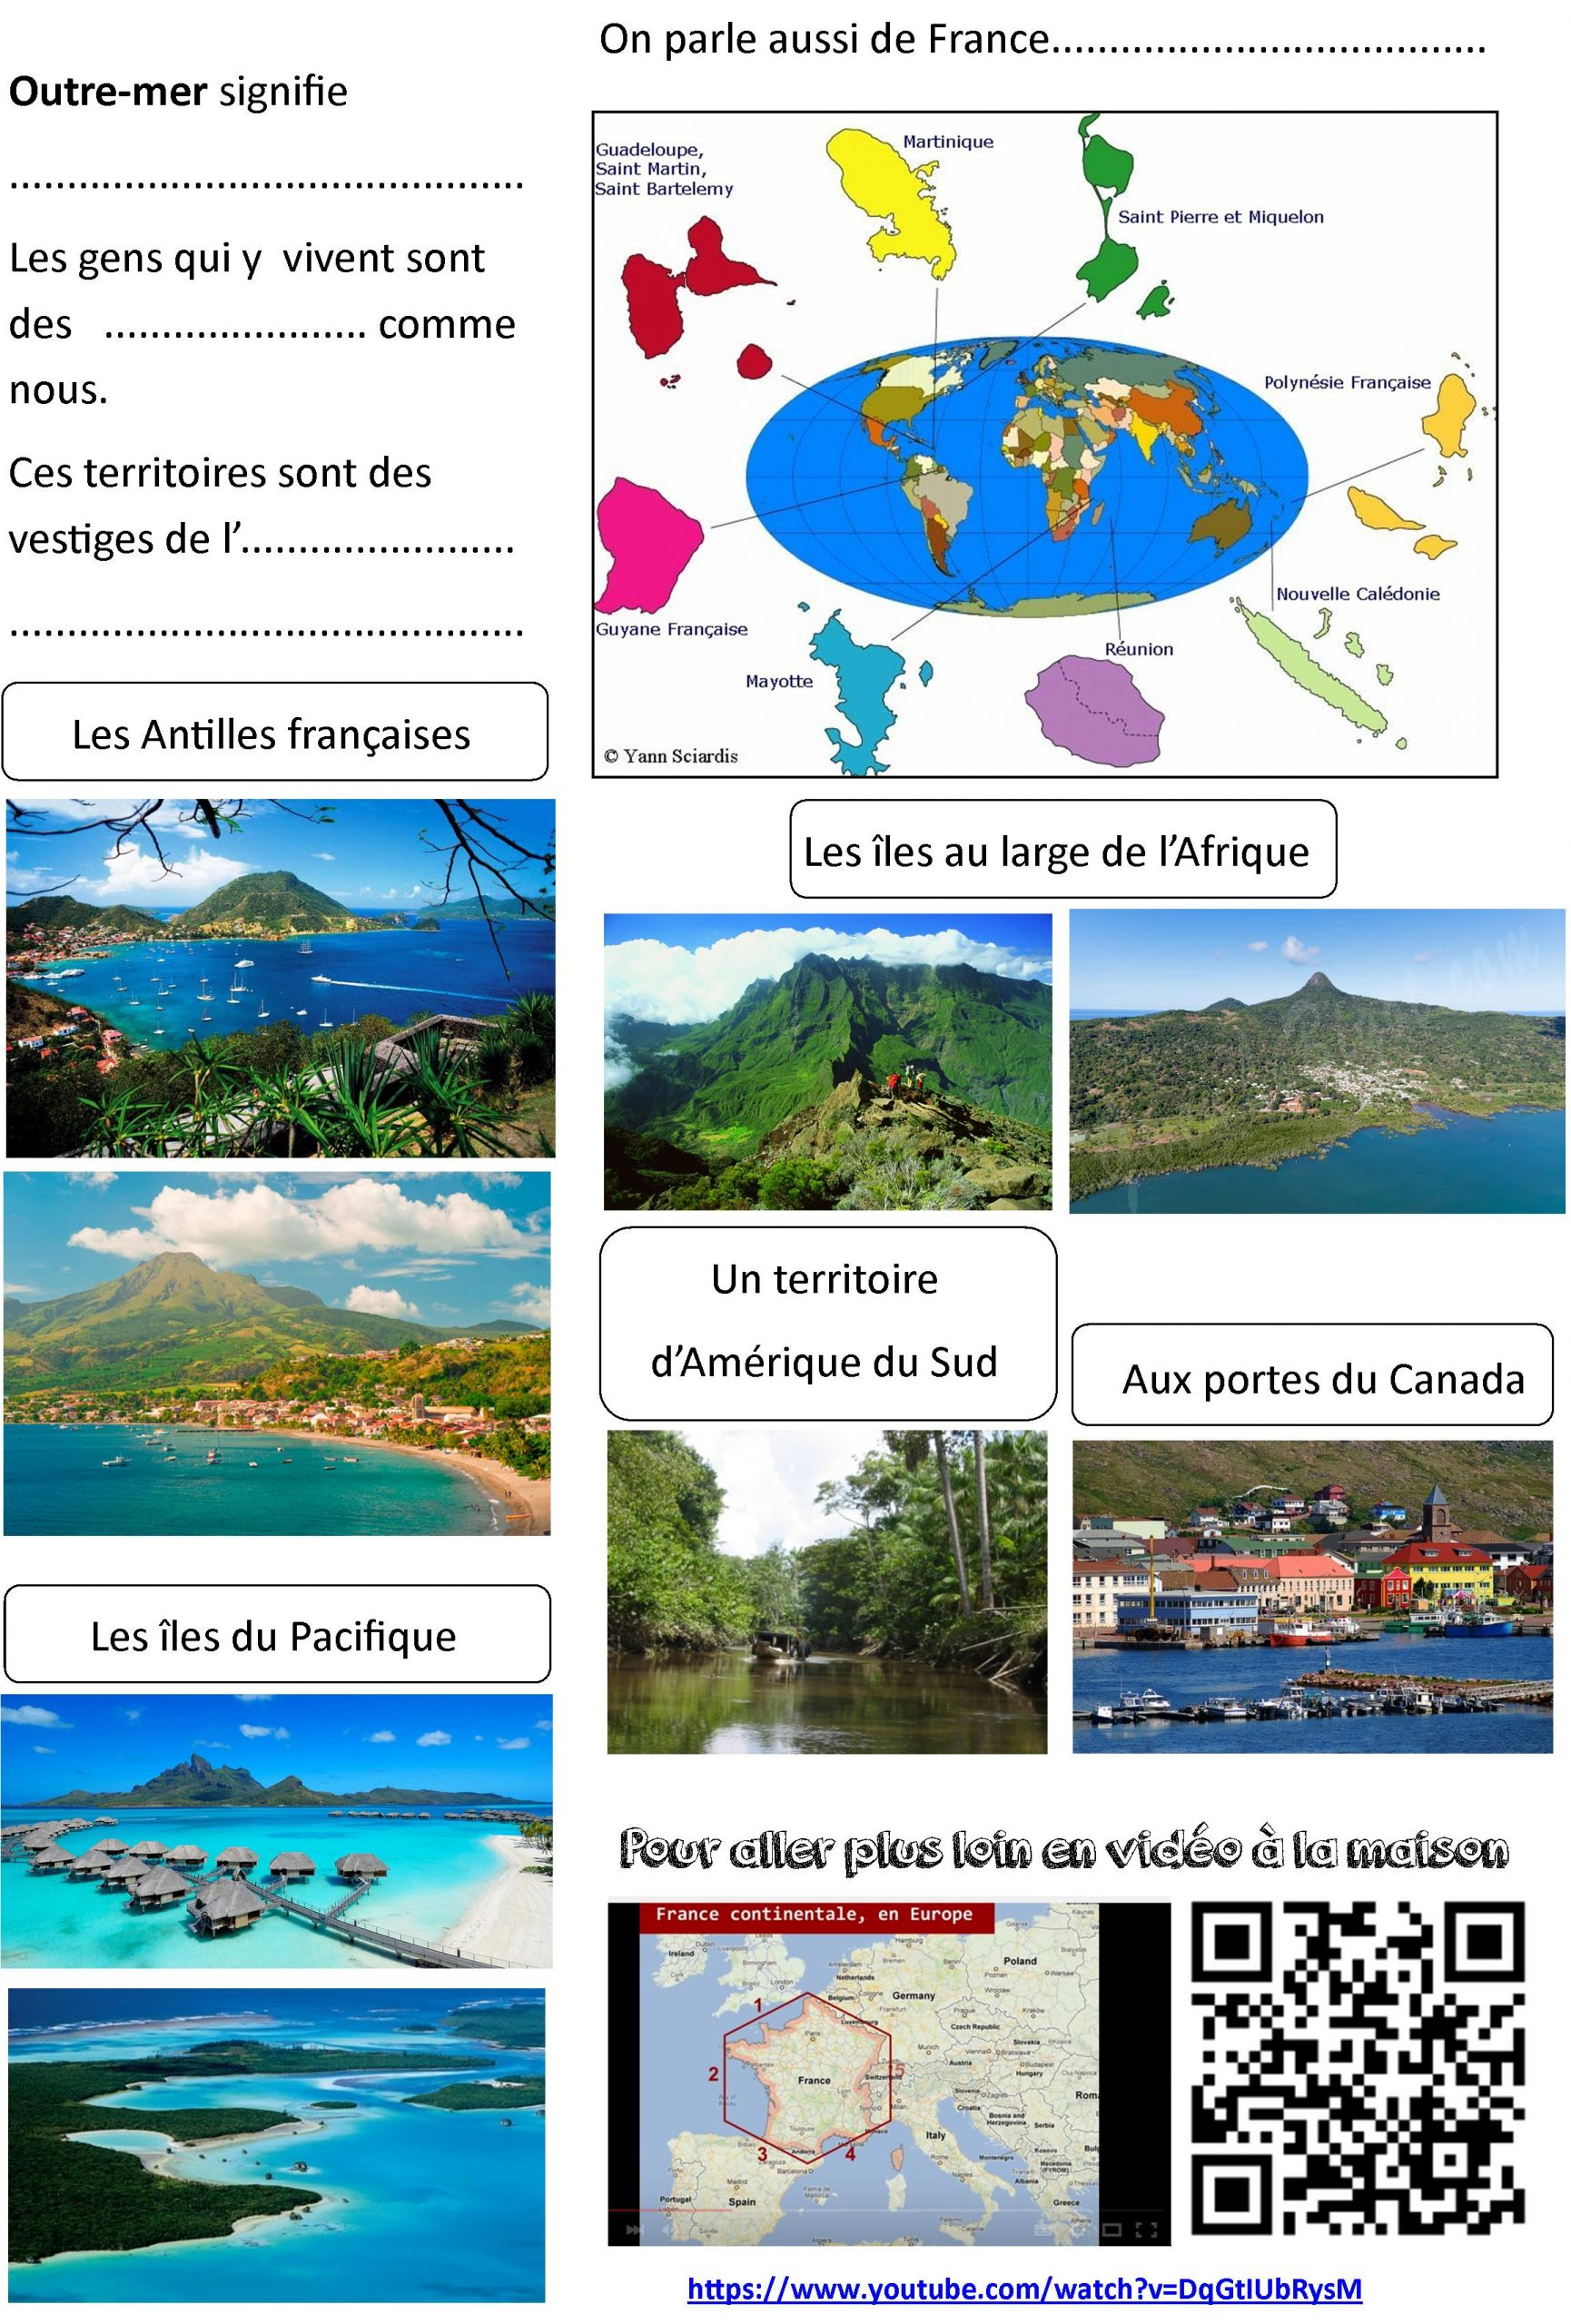 Carte De France Ce2 | Le Blog De Monsieur Mathieu concernant Carte De France Ce2